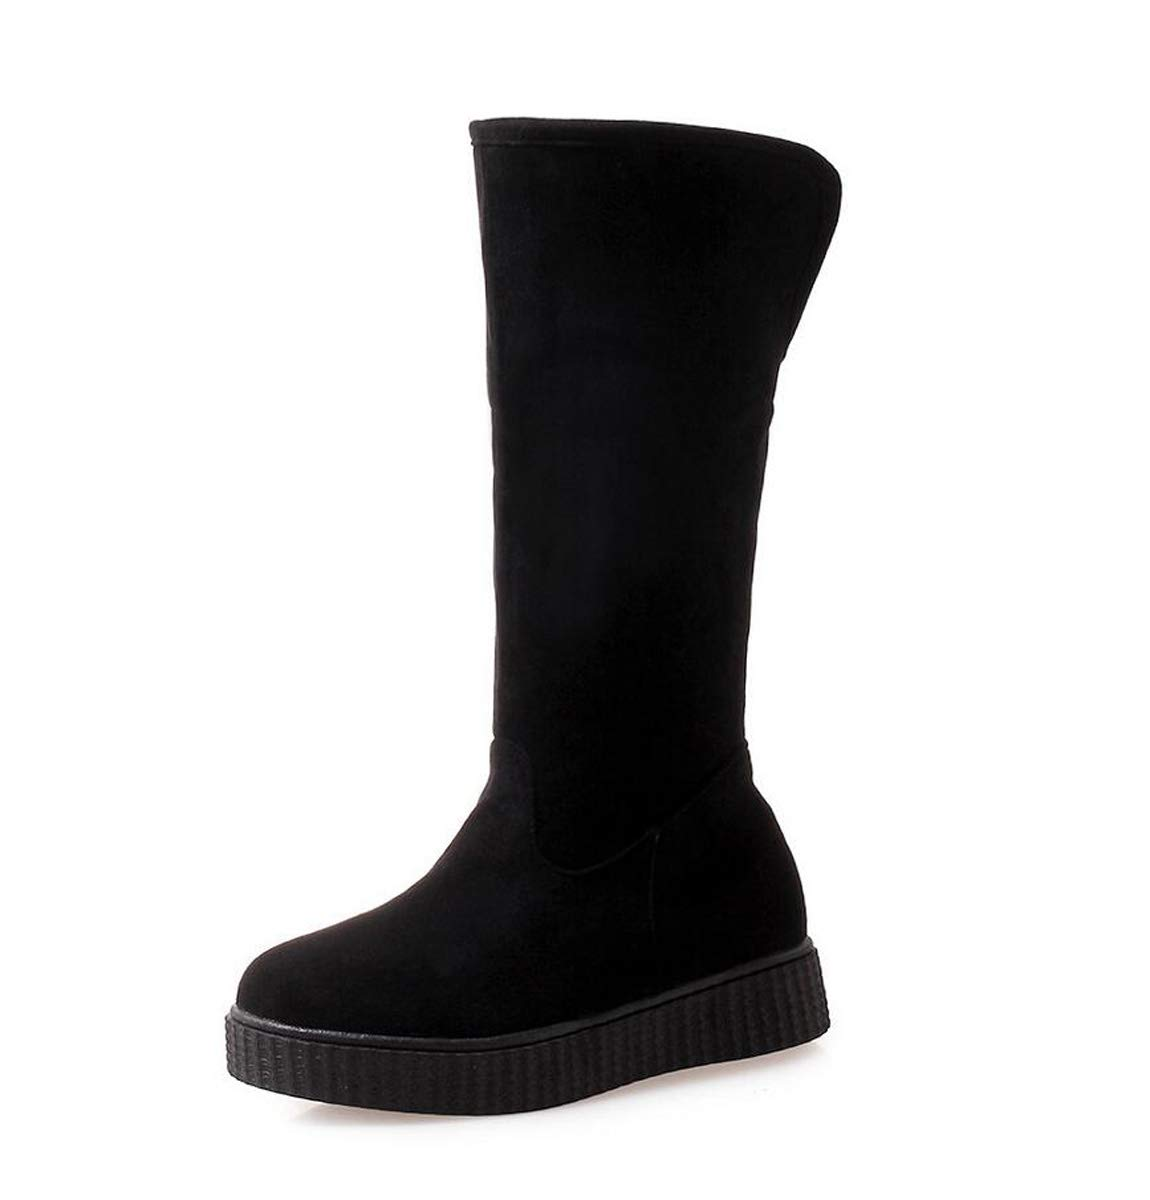 DANDANJIE Snow Boots for Women 2018 Newest Ladies Warm Flat Heel Boots Round-Toe Slip-On Boots for Girls